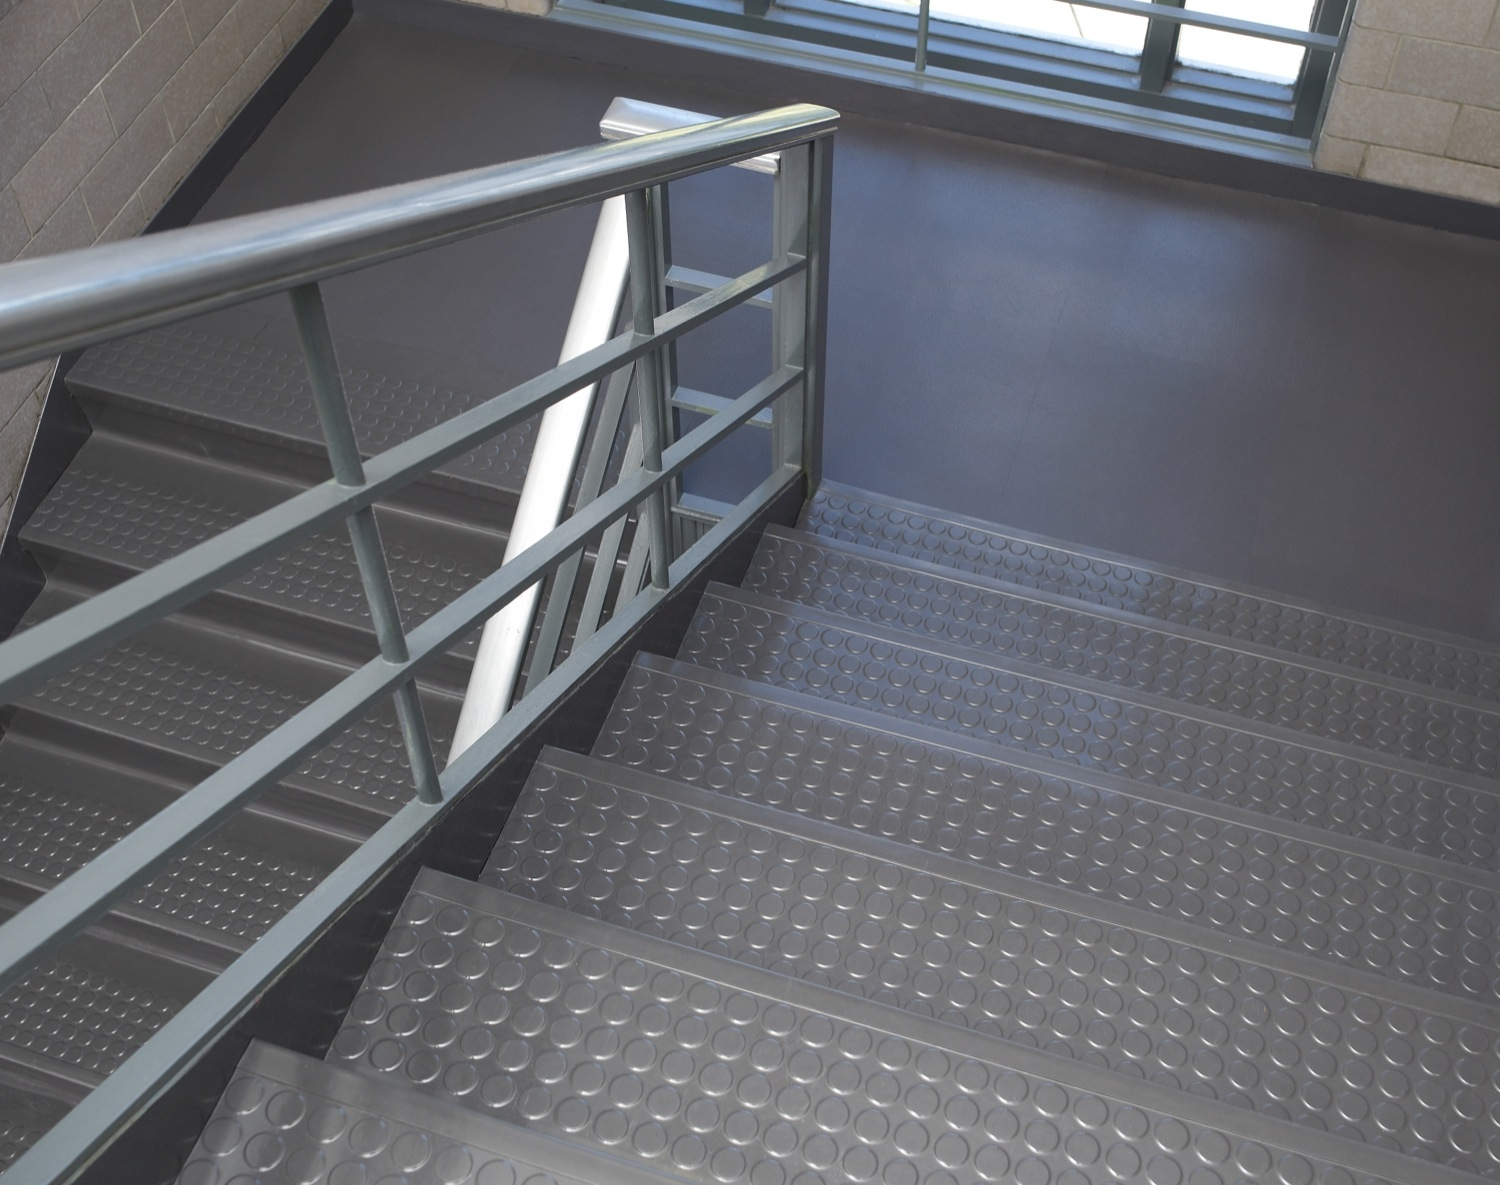 Flexco Rubber Flooring Vinyl Flooring » Rubber Stair Treads Samples | Outdoor Rubber Stair Treads | Outside | Metal Tray | Rectangular Cord Treads | Clear Rubber | Heavy Duty